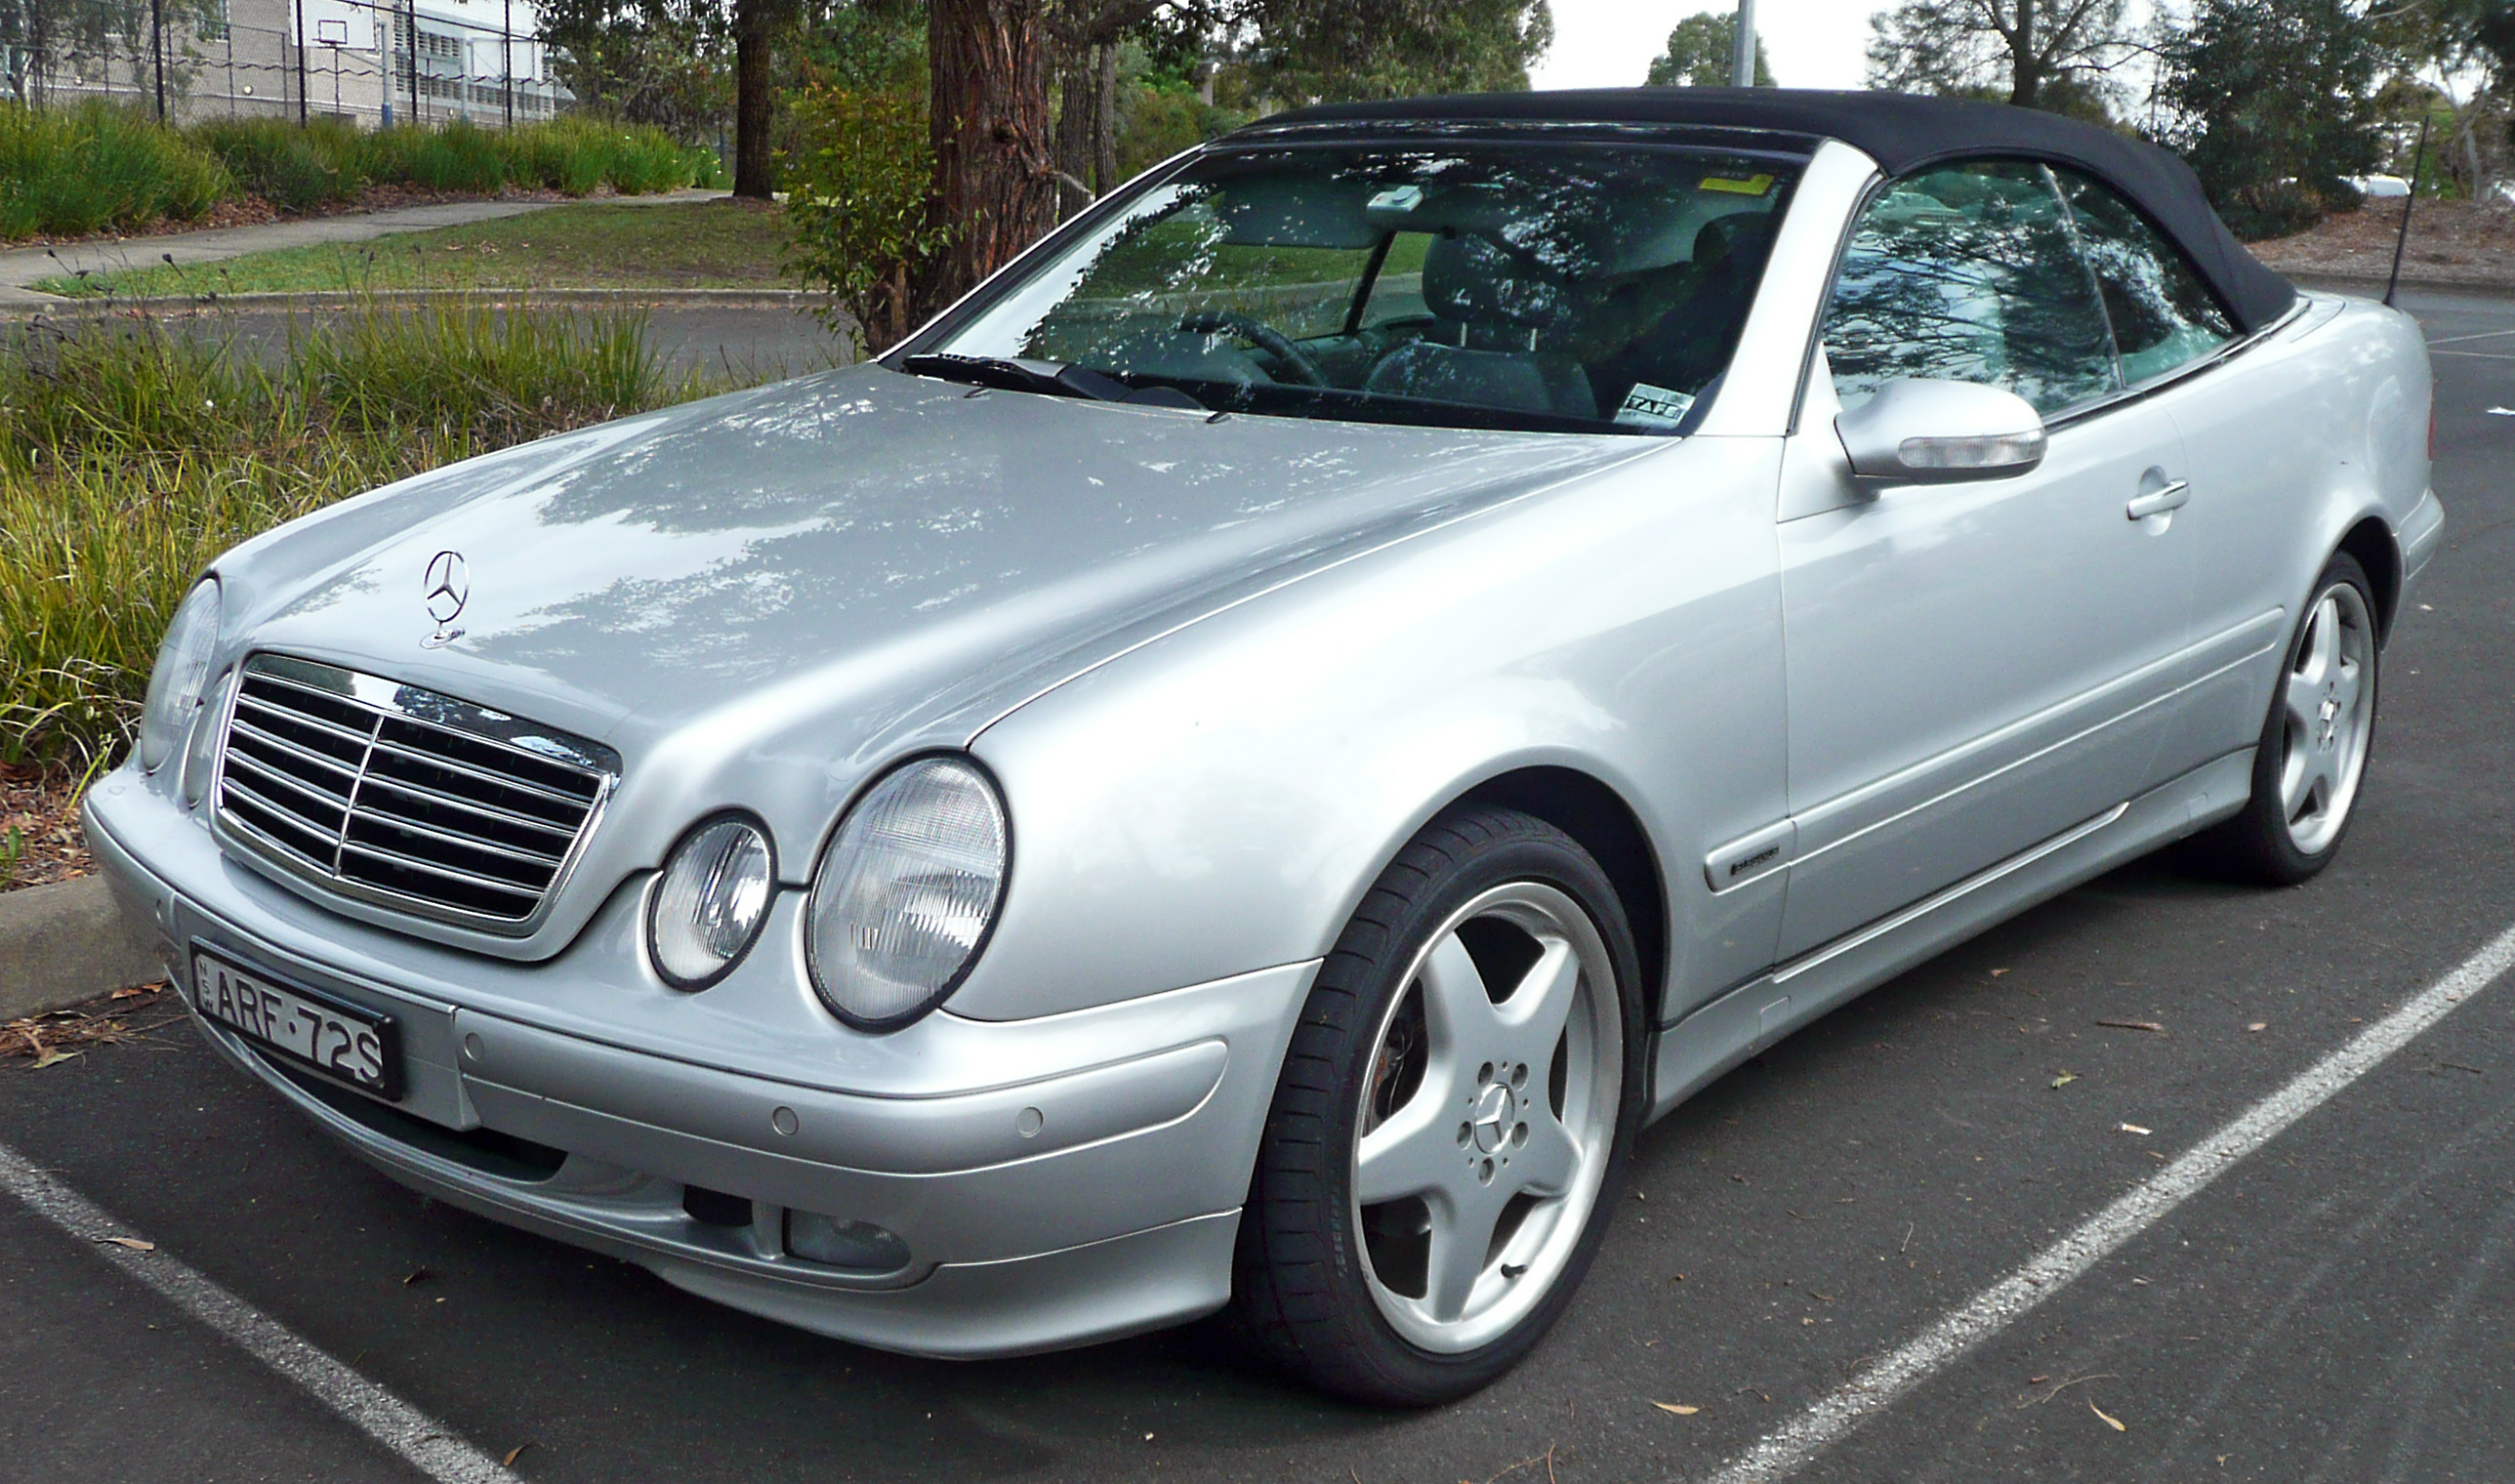 519324 Clk Convertible Top Problem Solving  mon Electrical Hydraulic System Failures 2 in addition Datei Mercedes CLK55 W209 as well 30 as well 24618716 additionally Watch. on clk 430 convertible